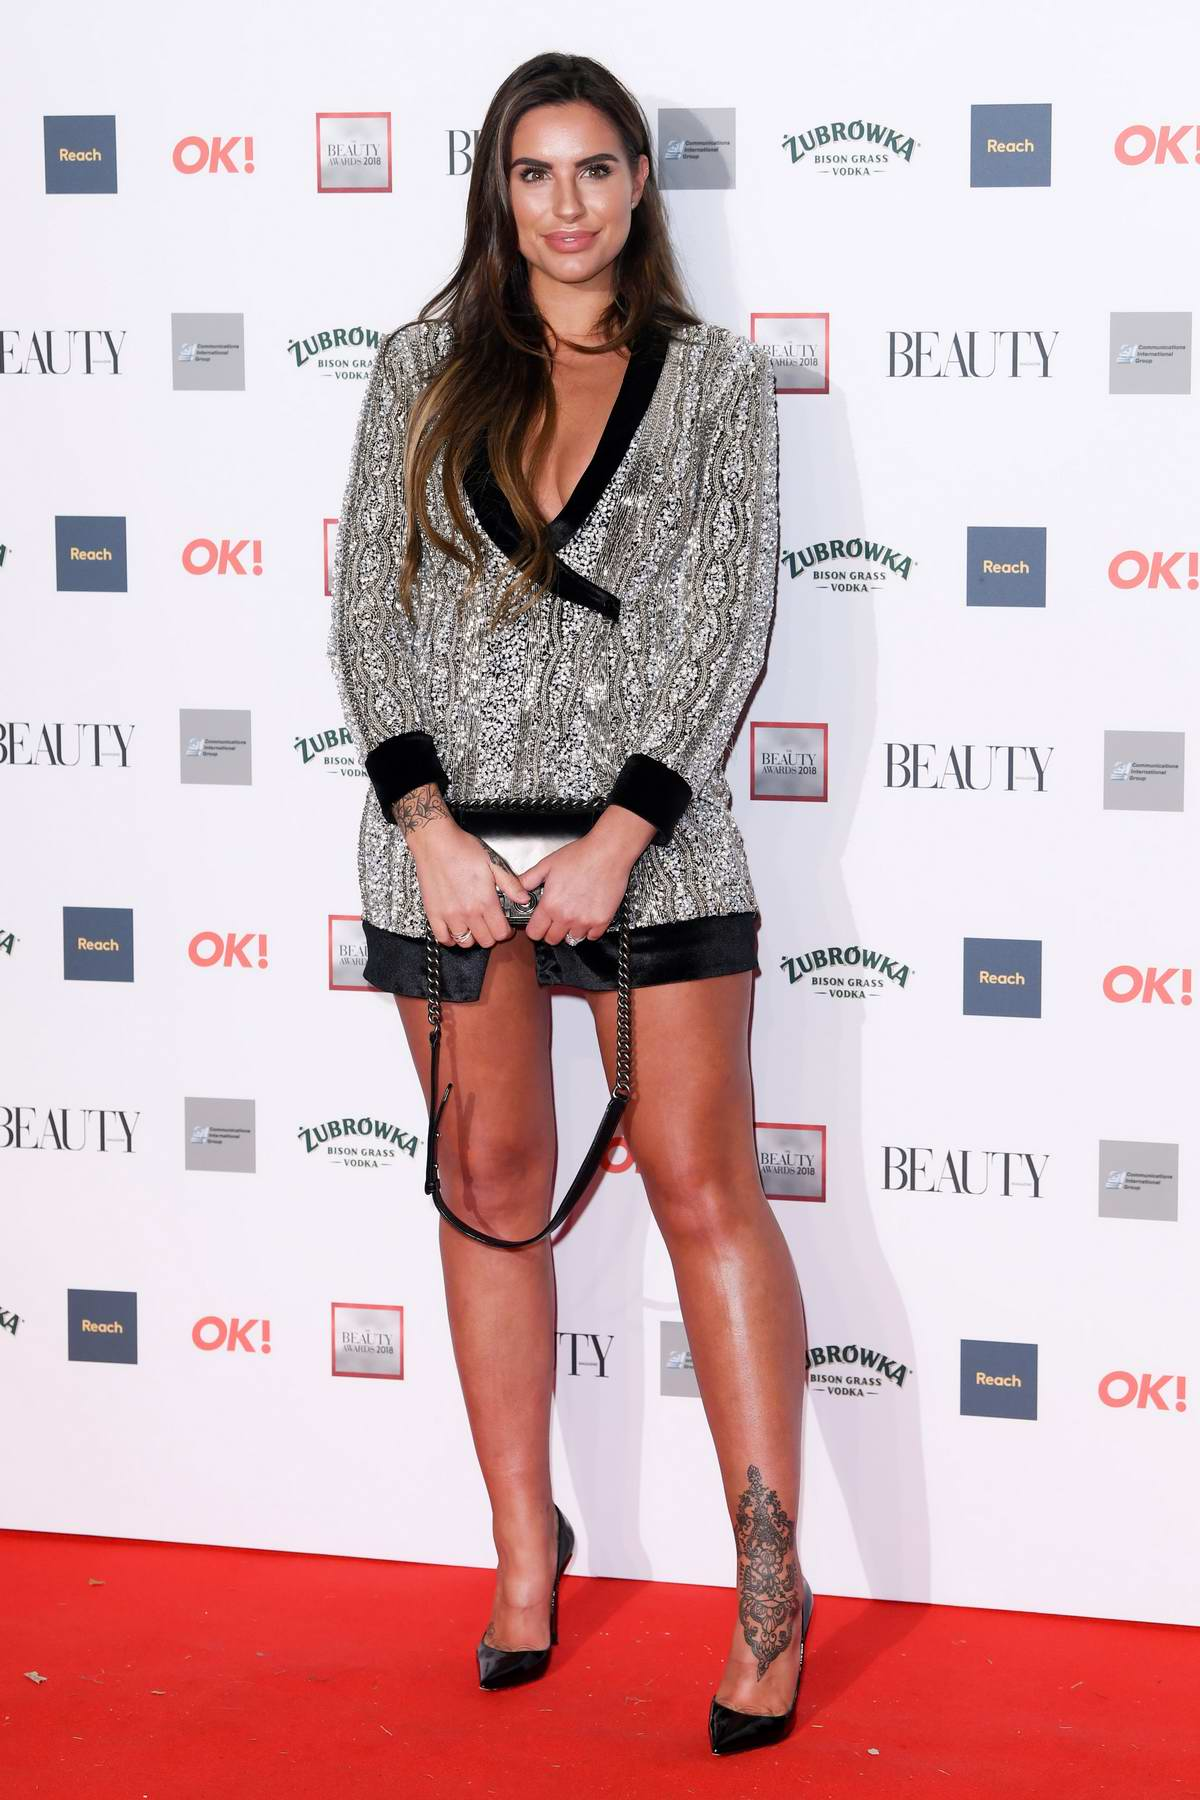 Jessica Shears attends the OK! Beauty Awards at Park Plaza Westminster Bridge in London, UK